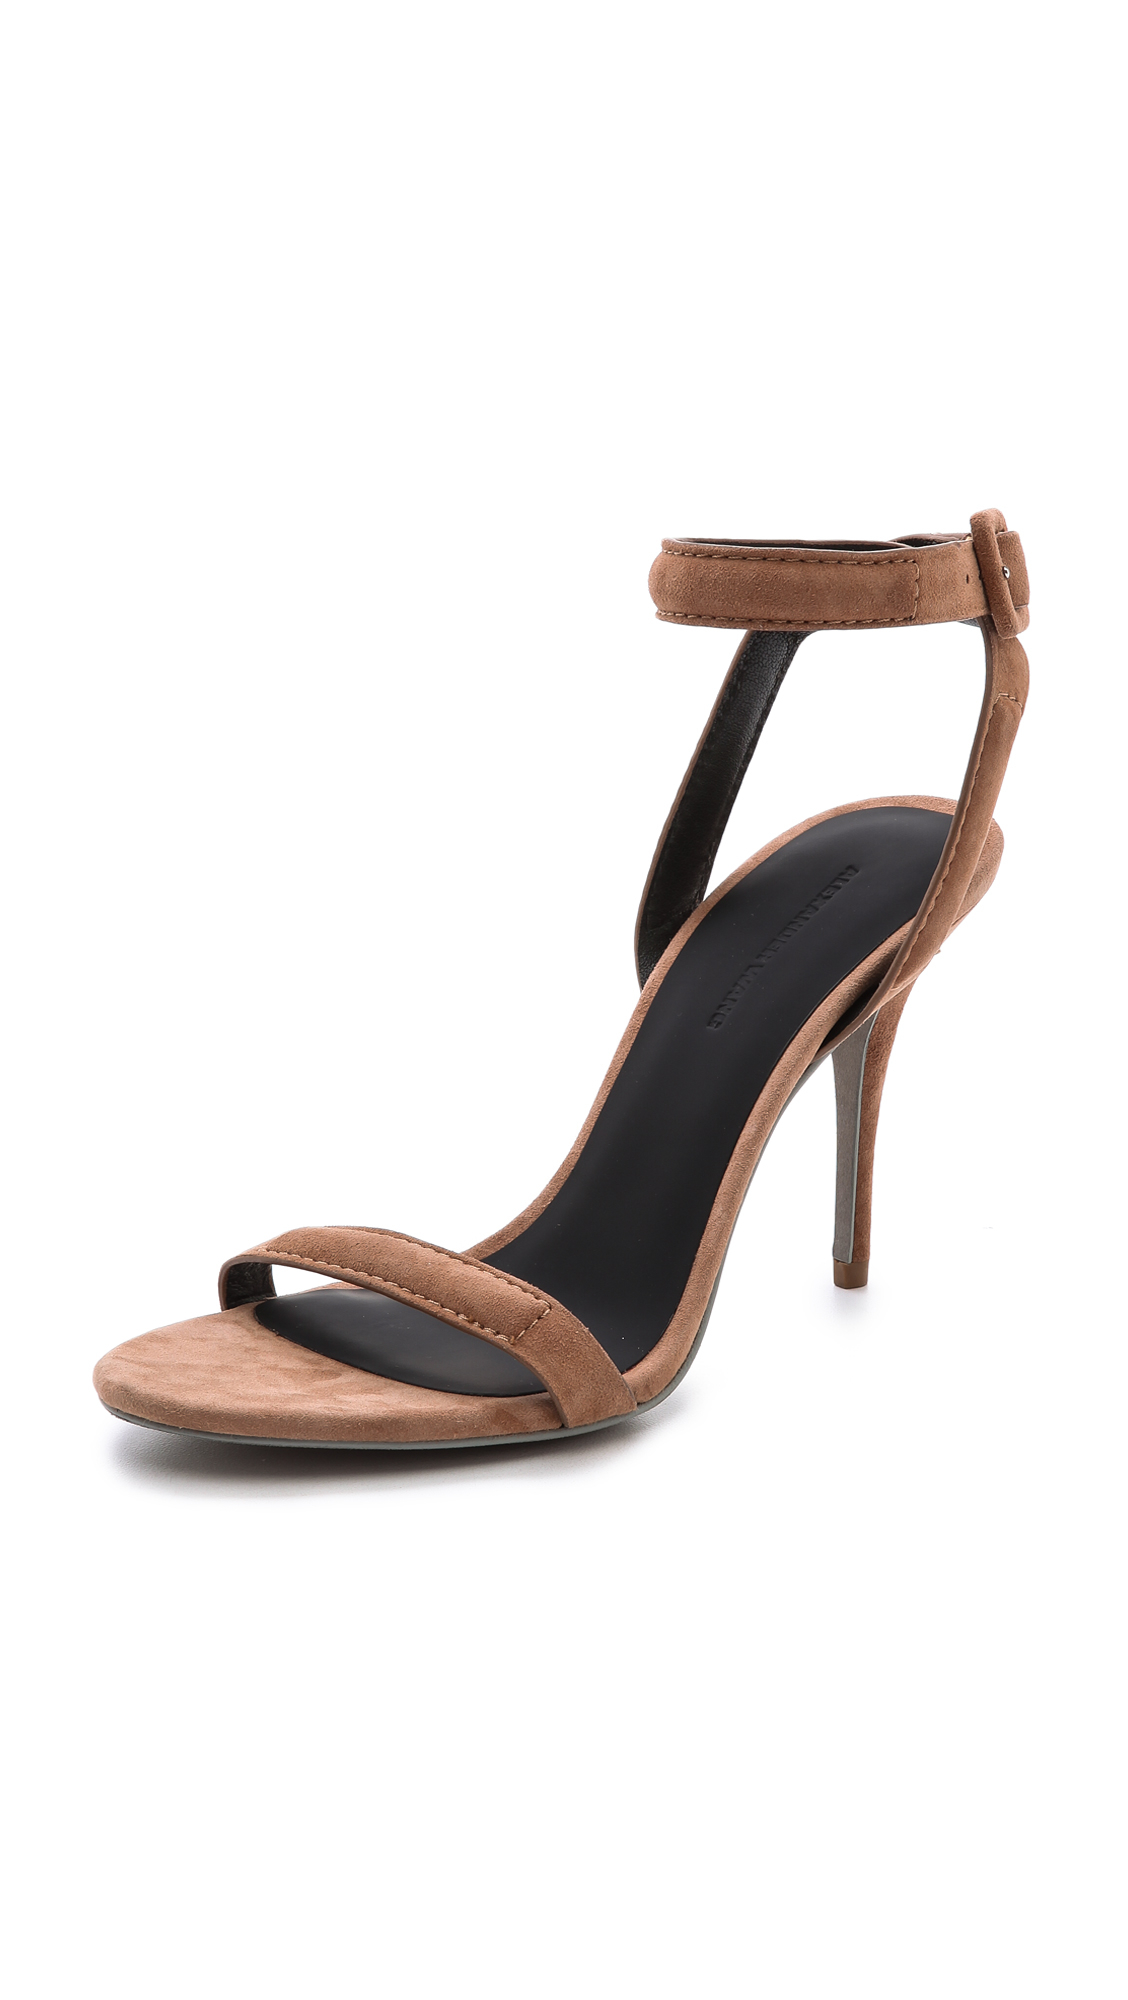 Lyst - Alexander Wang Antonia Ankle Strap Sandals Beige in Natural 170ebf6029d